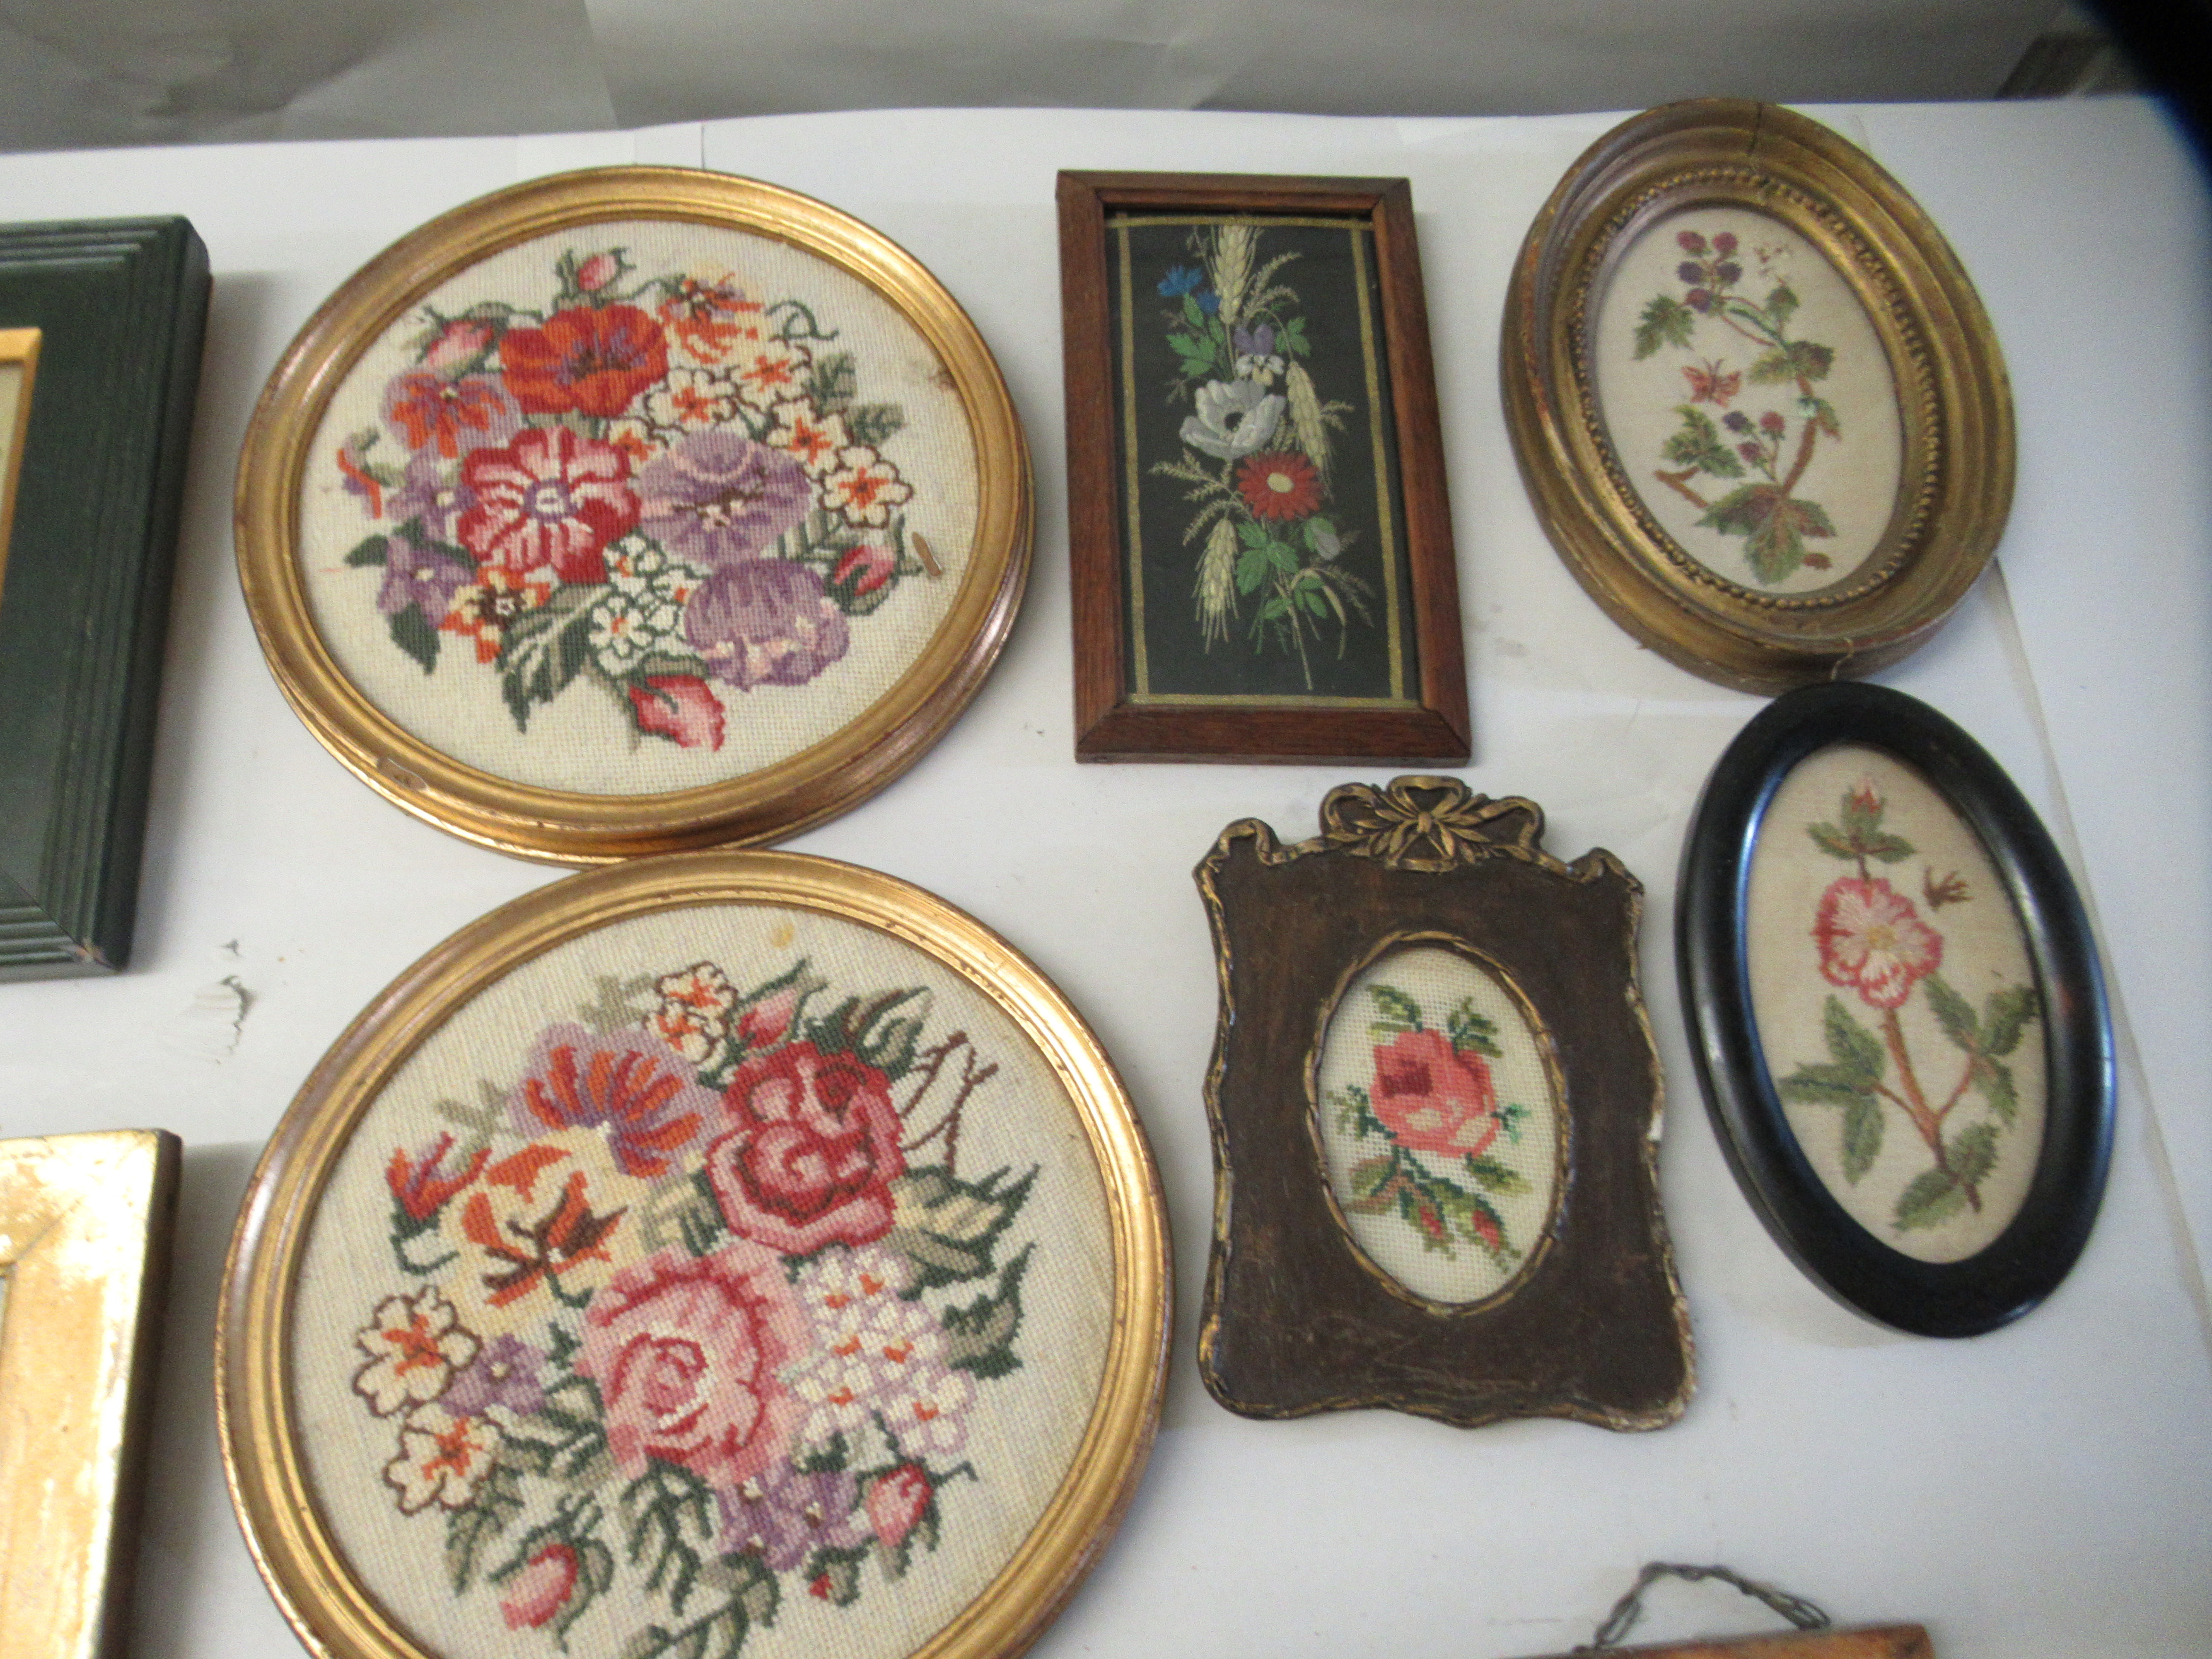 19th and 20thC embroidered tapestry panels various designs & sizes framed - Image 5 of 7